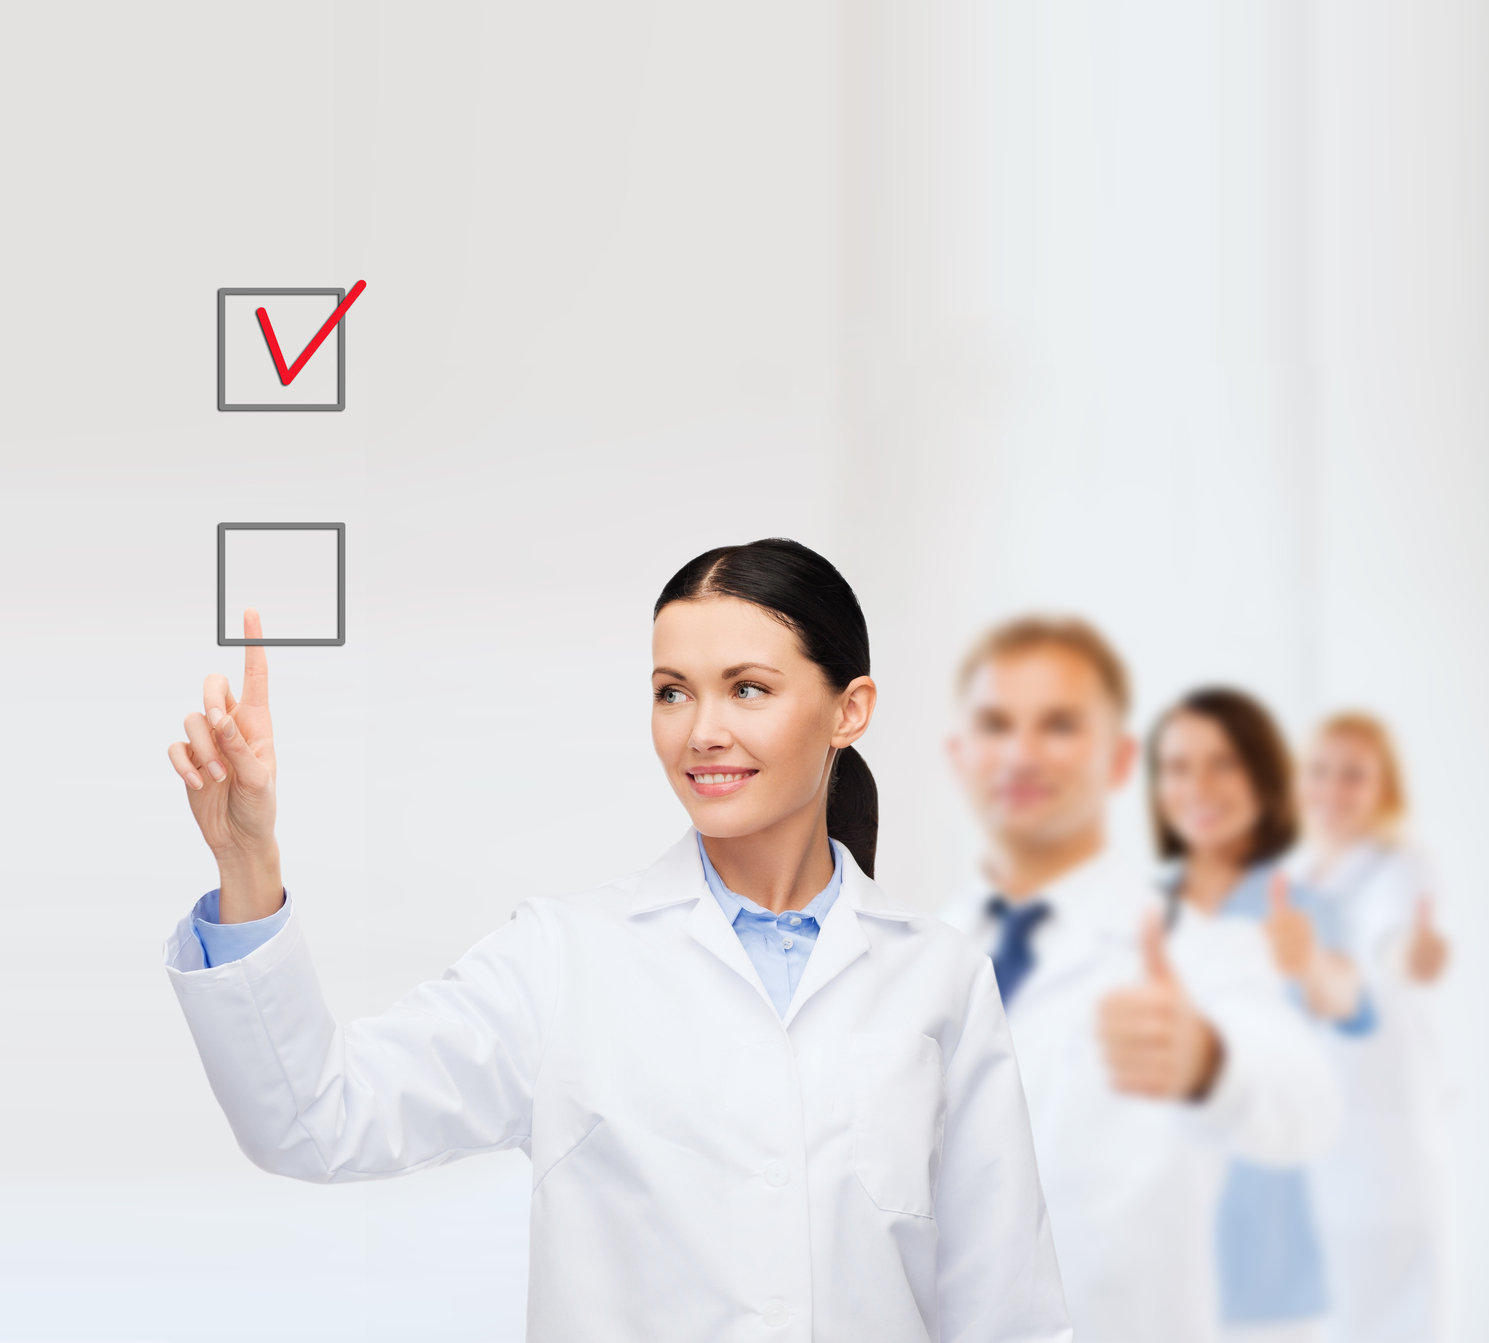 Clinical_Decision_making